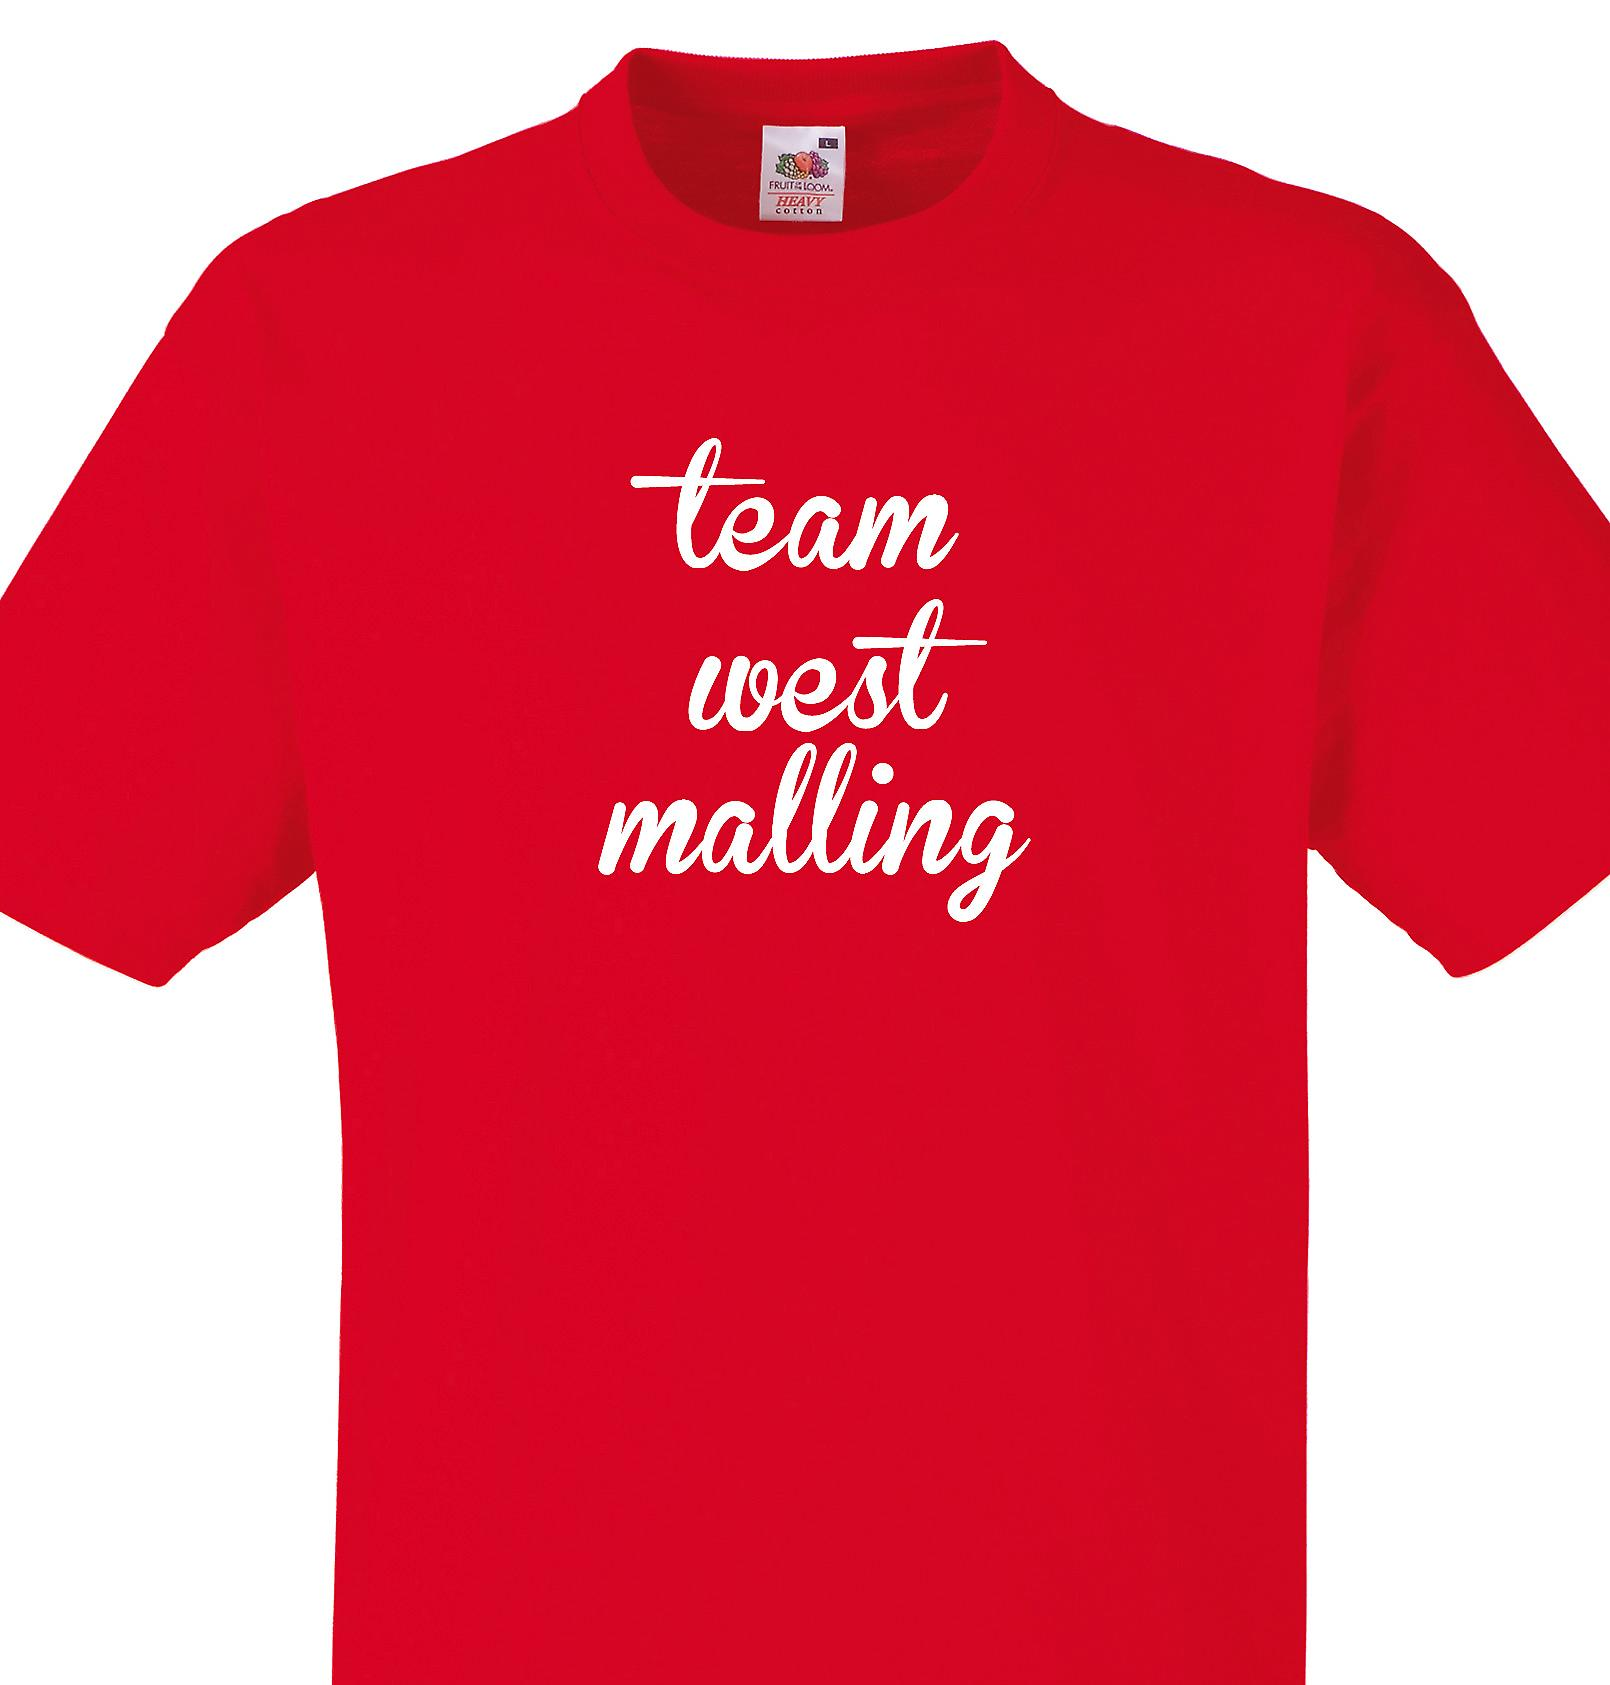 Team West malling Red T shirt